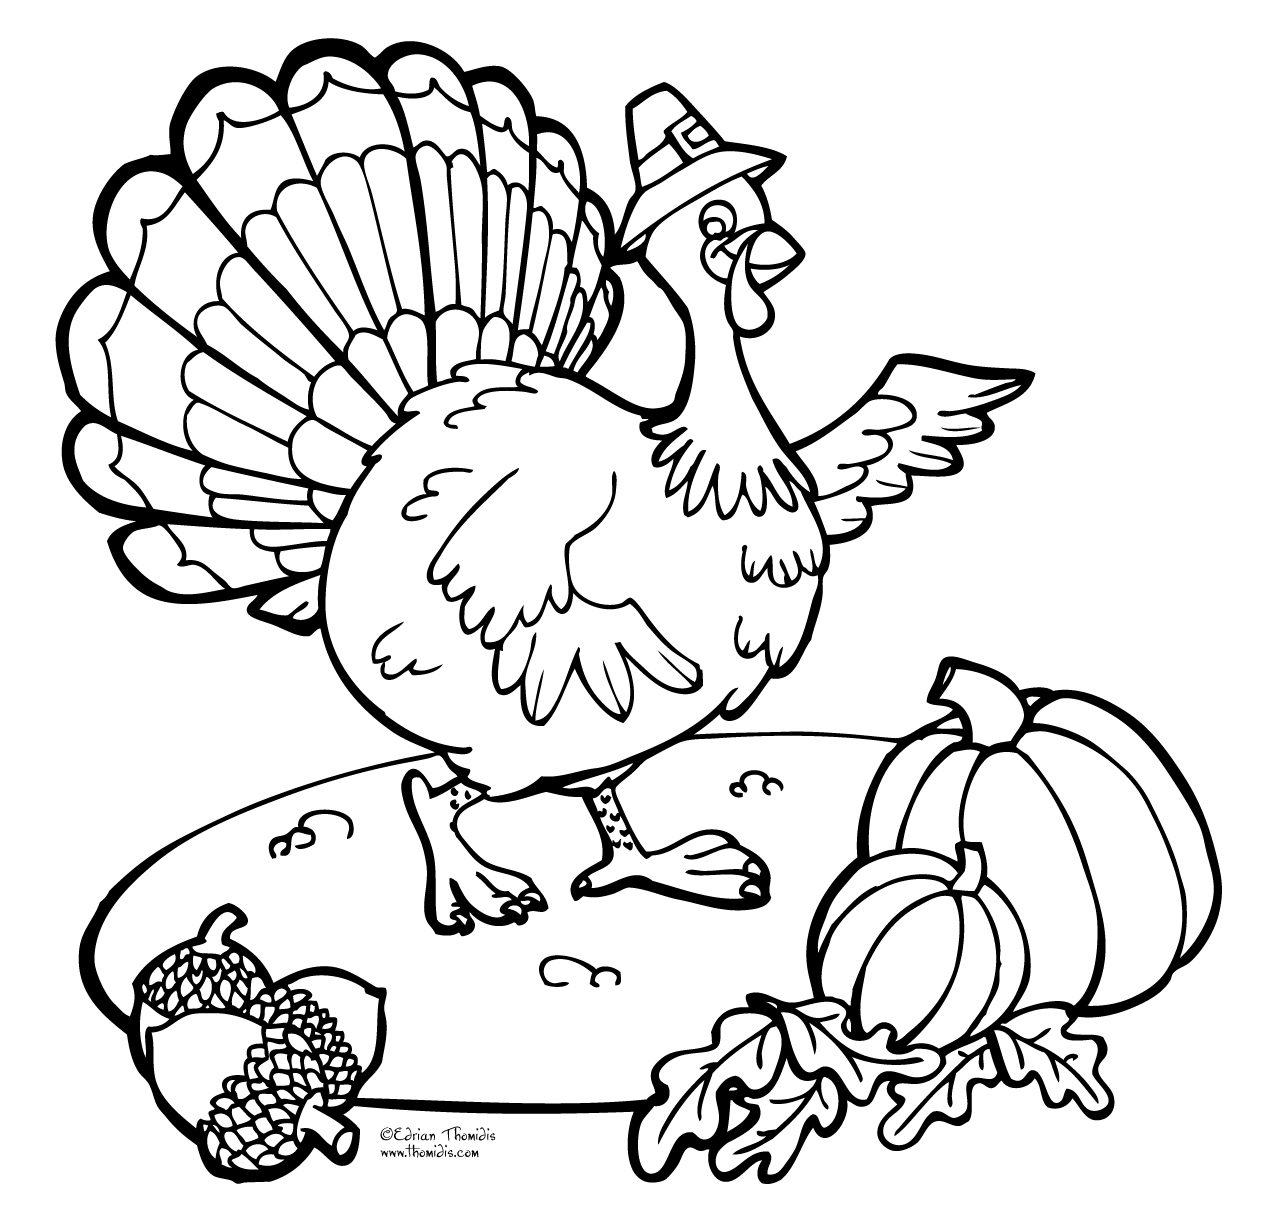 Printable thanksgiving-turkey-coloring-page - Coloringpagebook.com